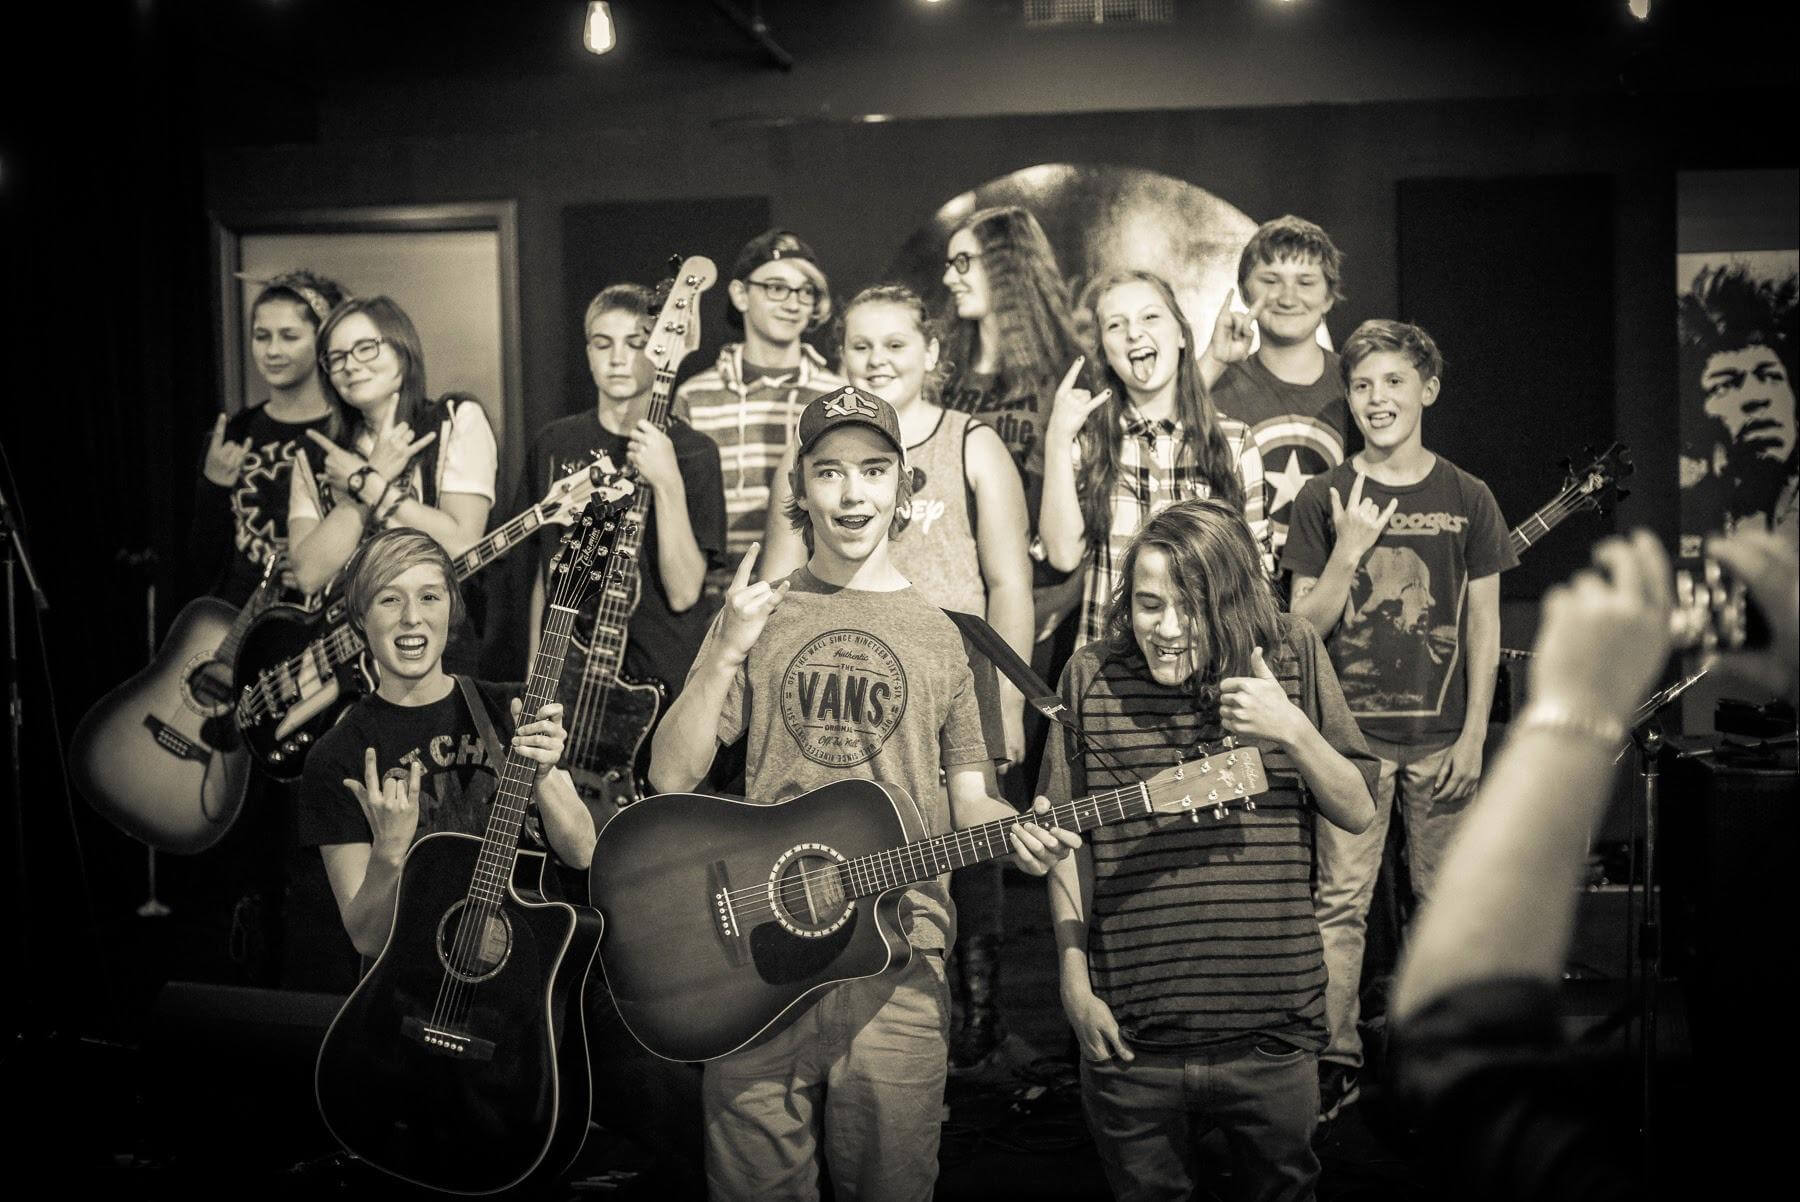 Best of the Warped Tour gigs at Rhapsody Barrel Bar in downtown Kitchener